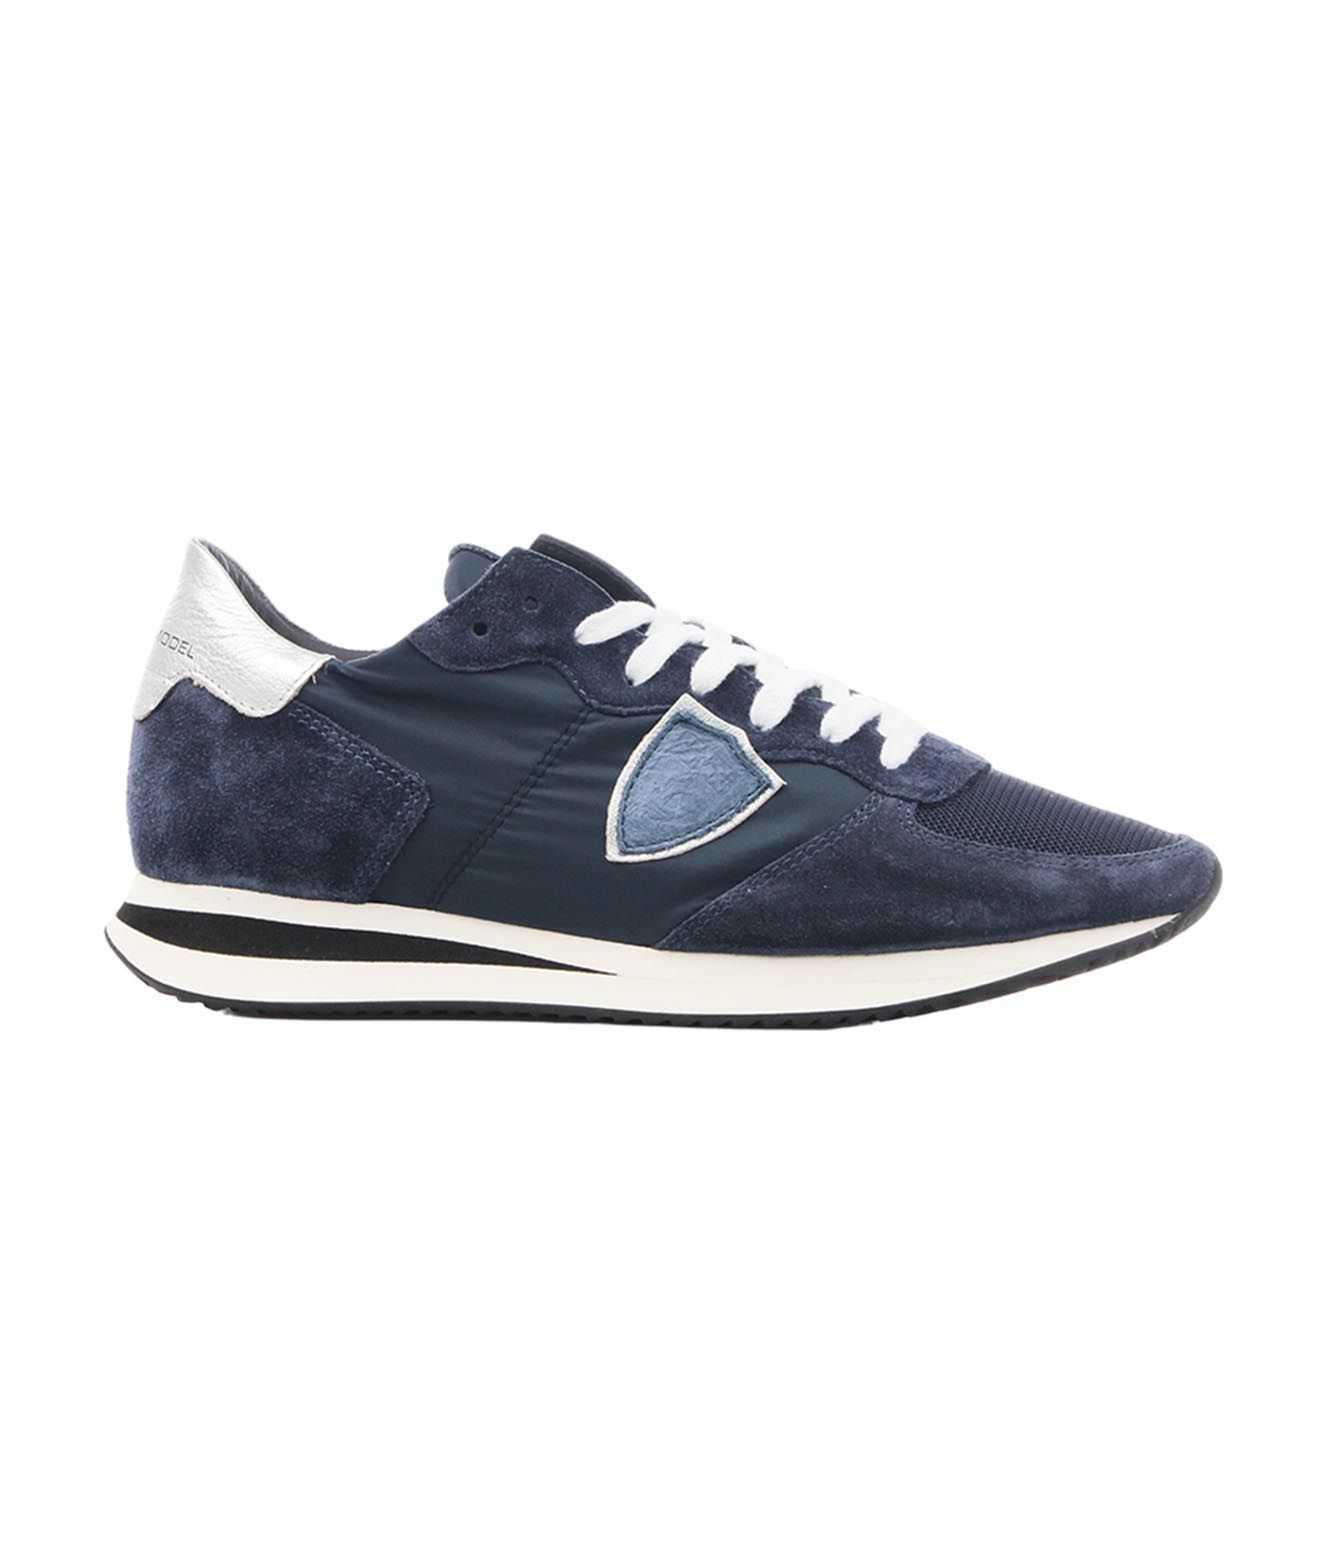 Philippe Model Sneakers PHILIPPE MODEL WOMEN'S TZLD2119 BLUE OTHER MATERIALS SNEAKERS